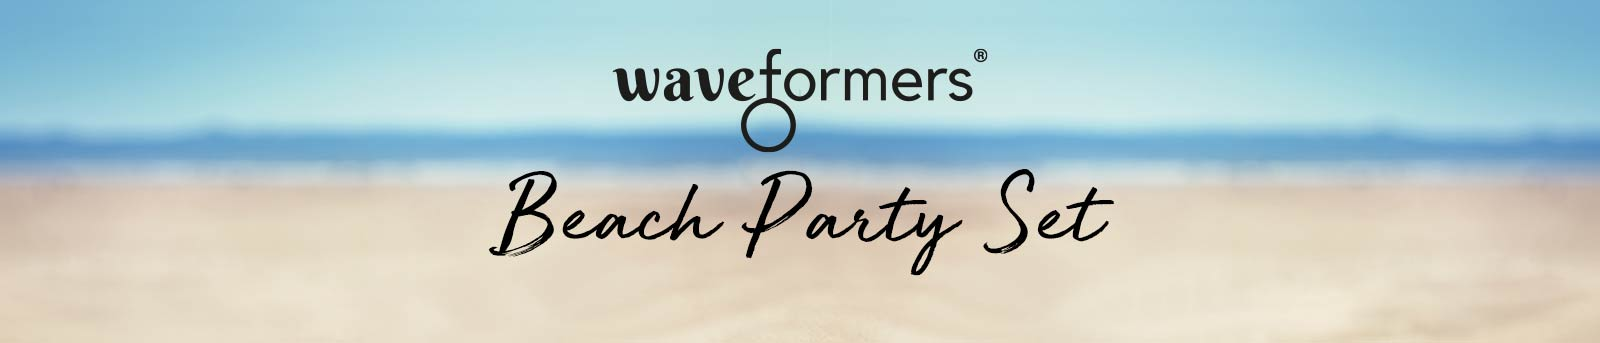 Waveformers Beach Party Set